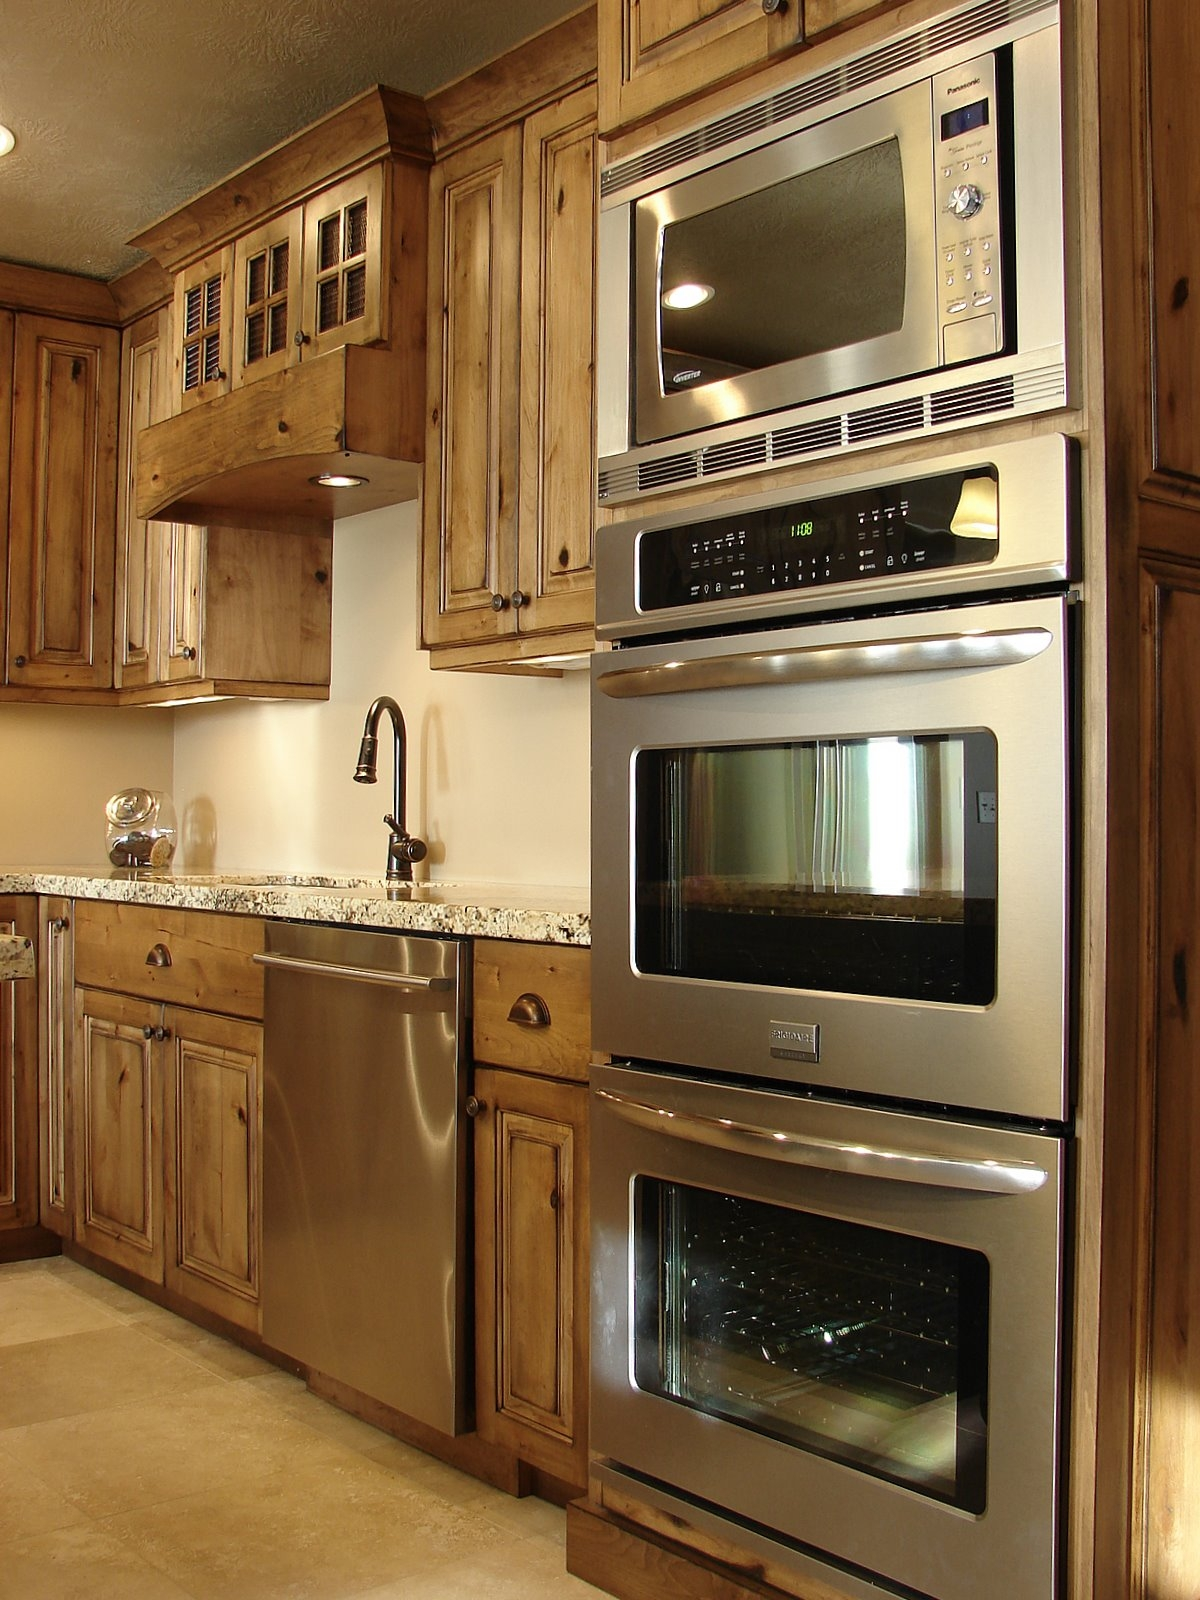 Kitchen Cabinets Over Microwave1200 X 1600